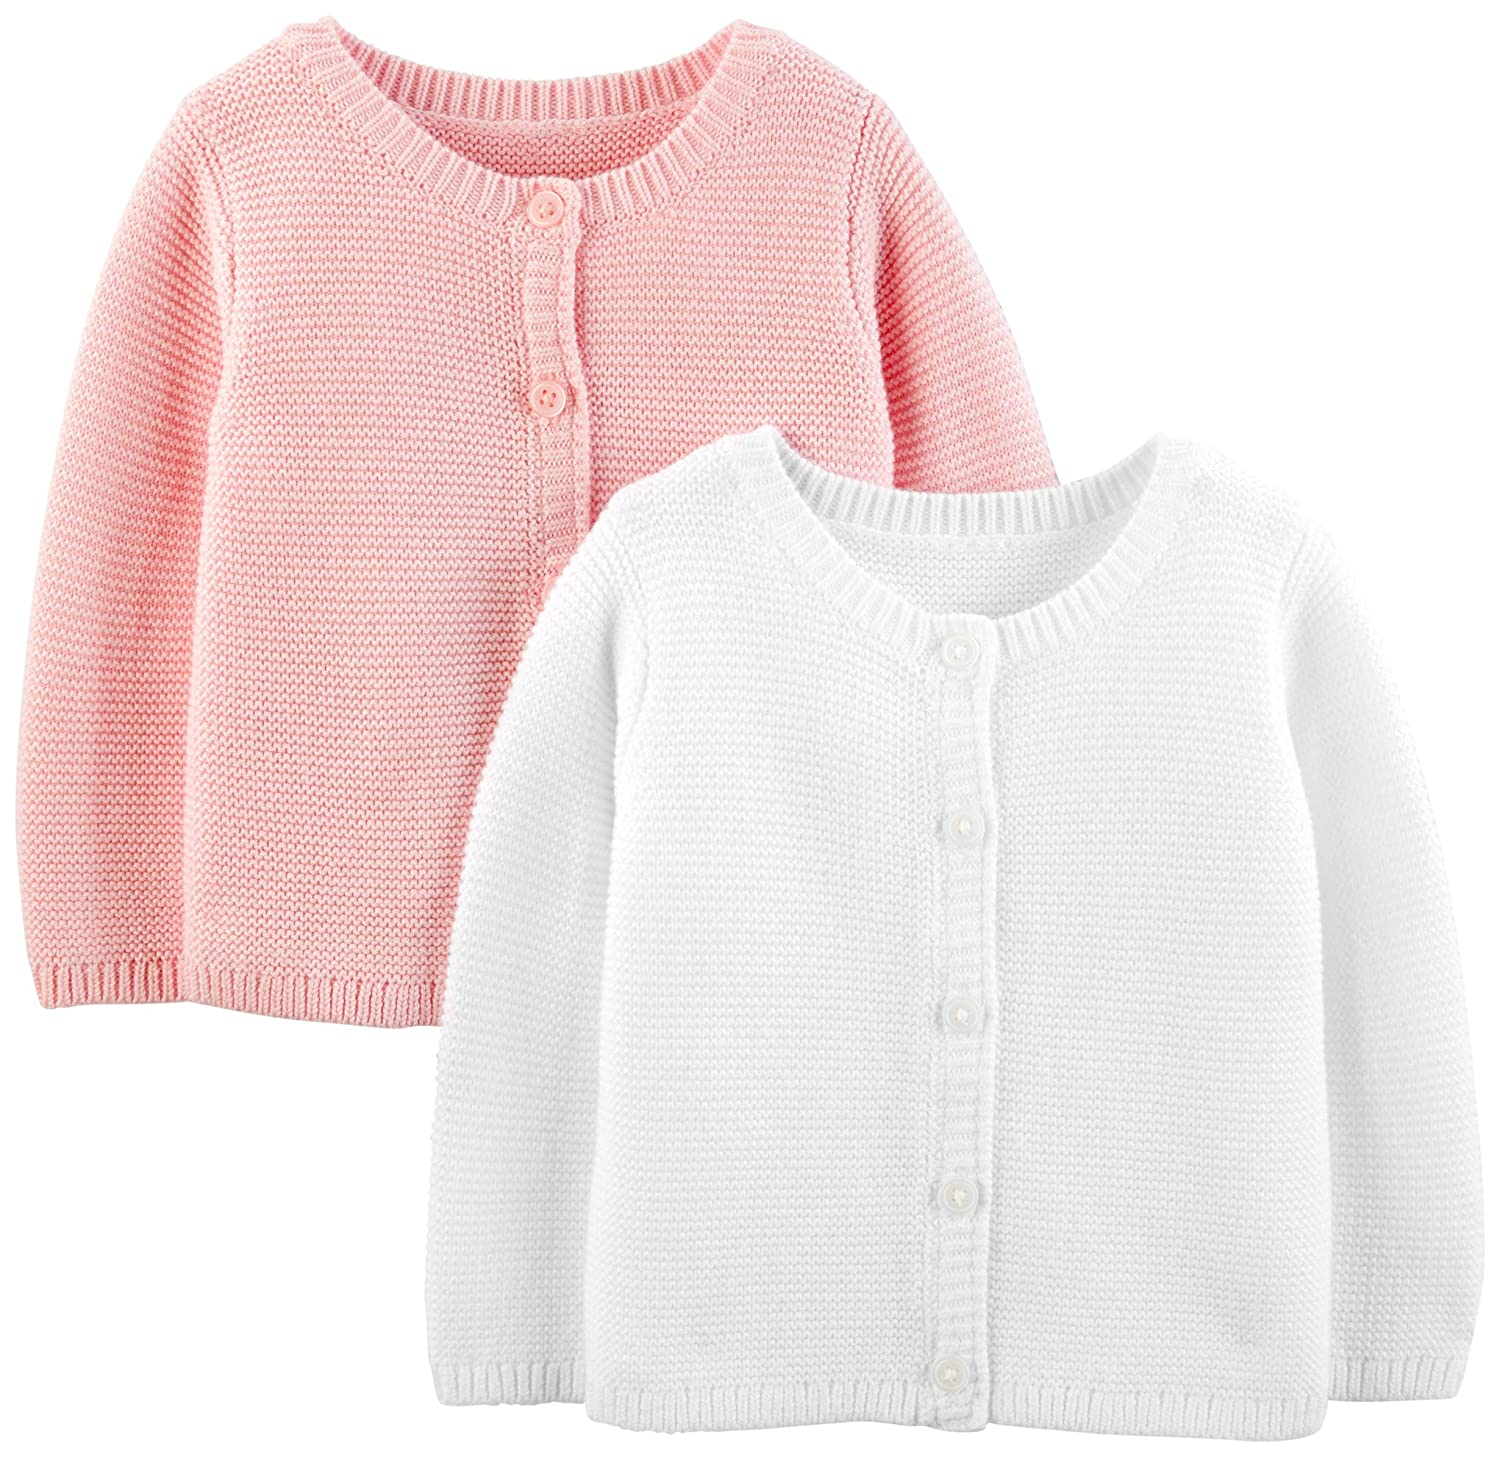 24e2b25b1 Amazon.com  Simple Joys by Carter s Baby Girls  2-Pack Knit Cardigan  Sweaters  Clothing